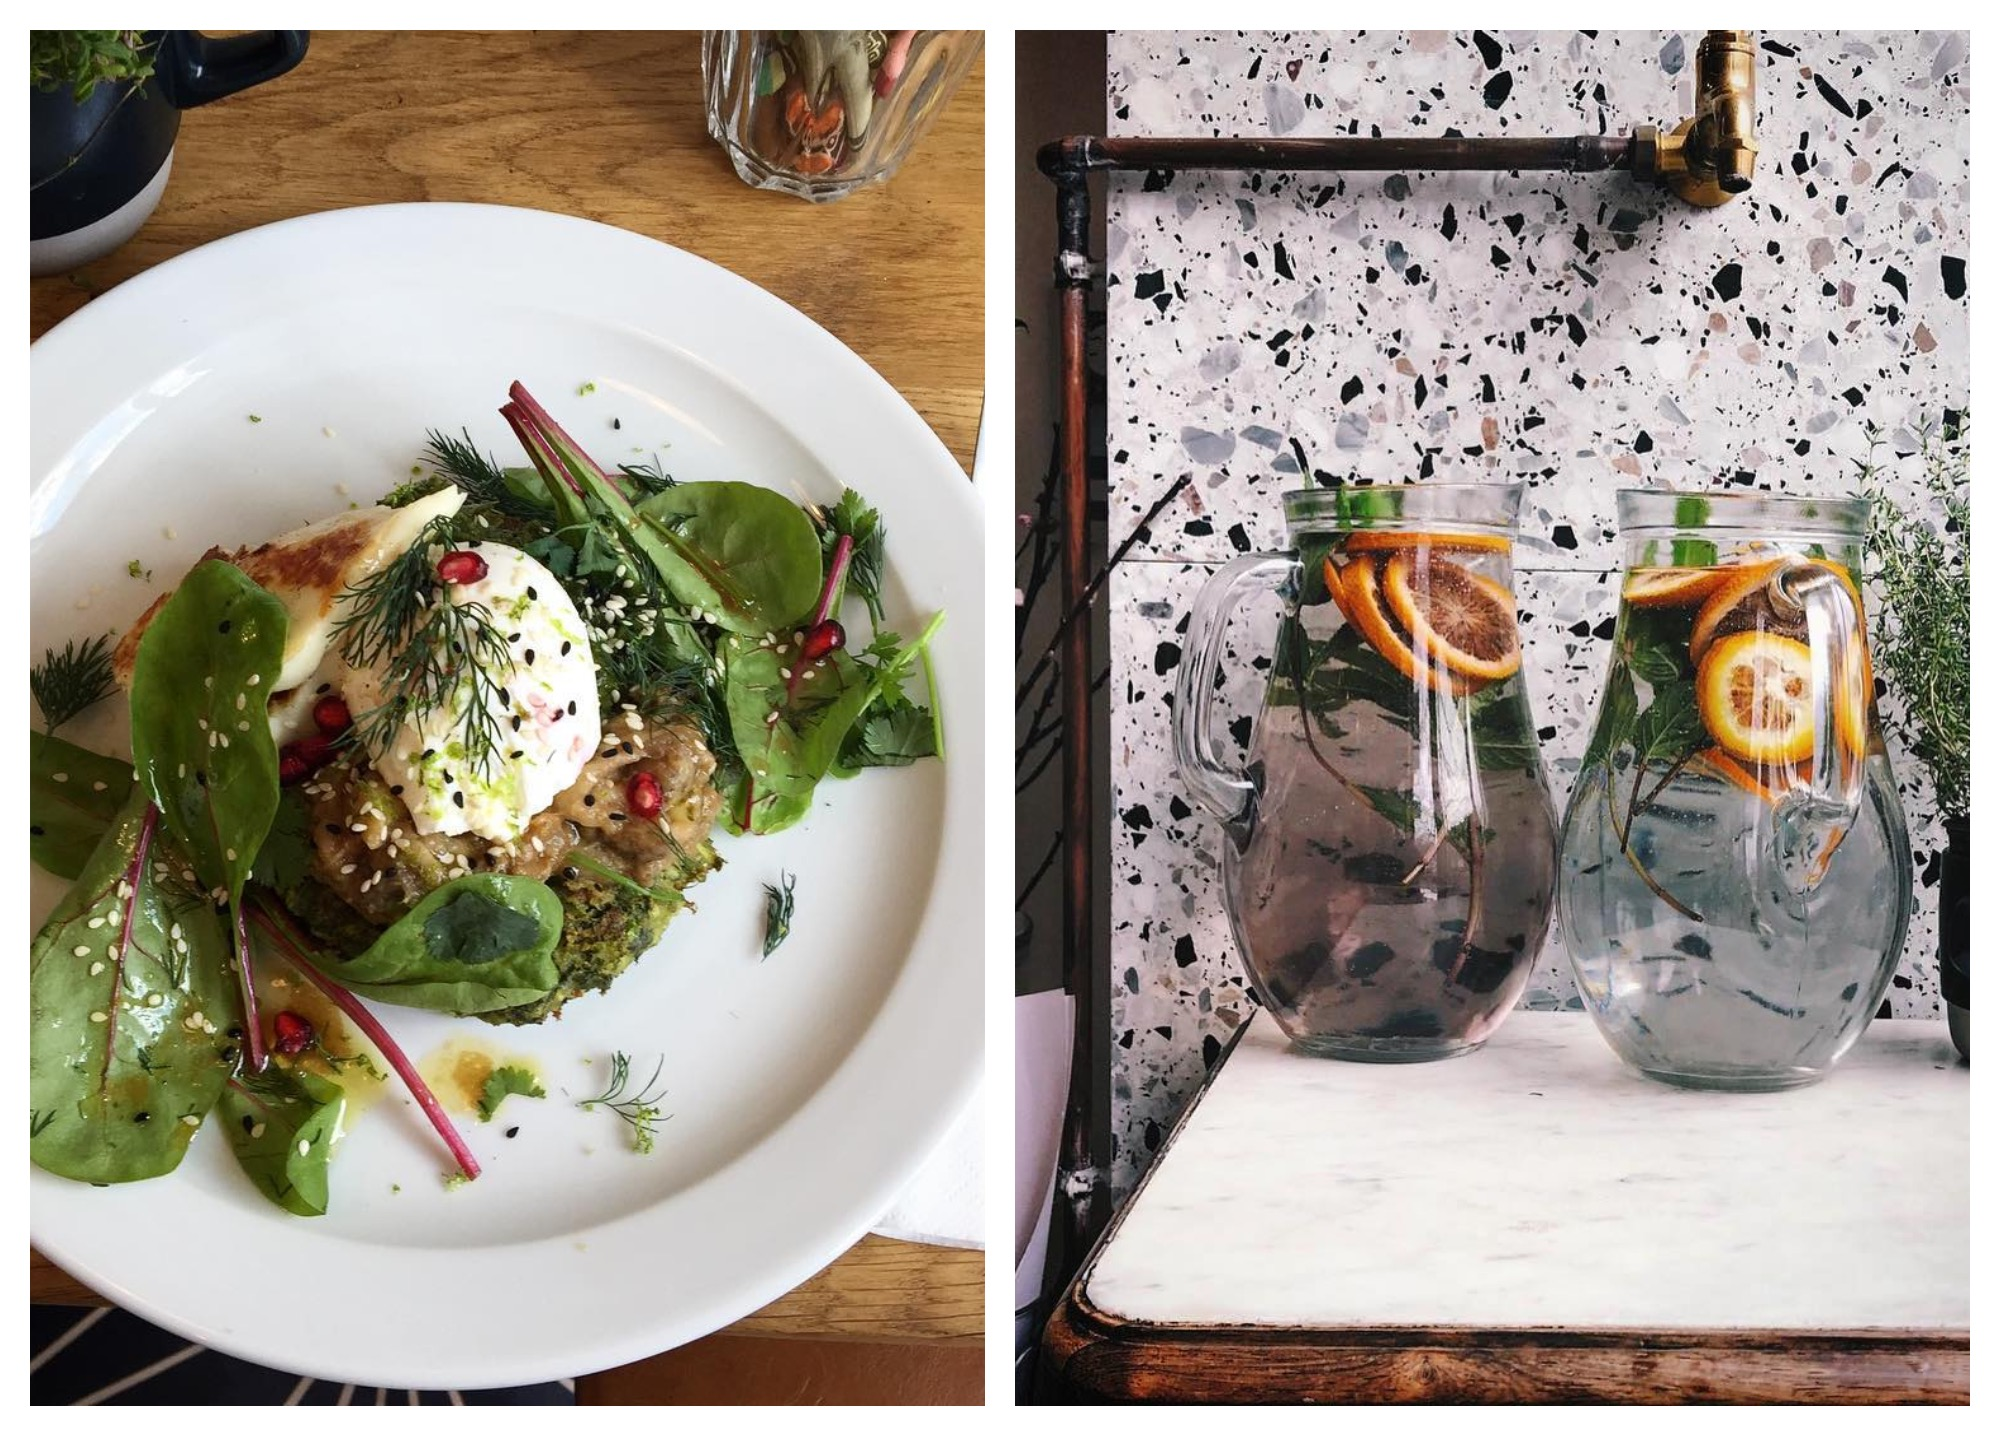 A great coffee shop for brunch in Paris close to the Marais is Neighbours, for its delicious salads (left), trendy decor and fruity water (right).